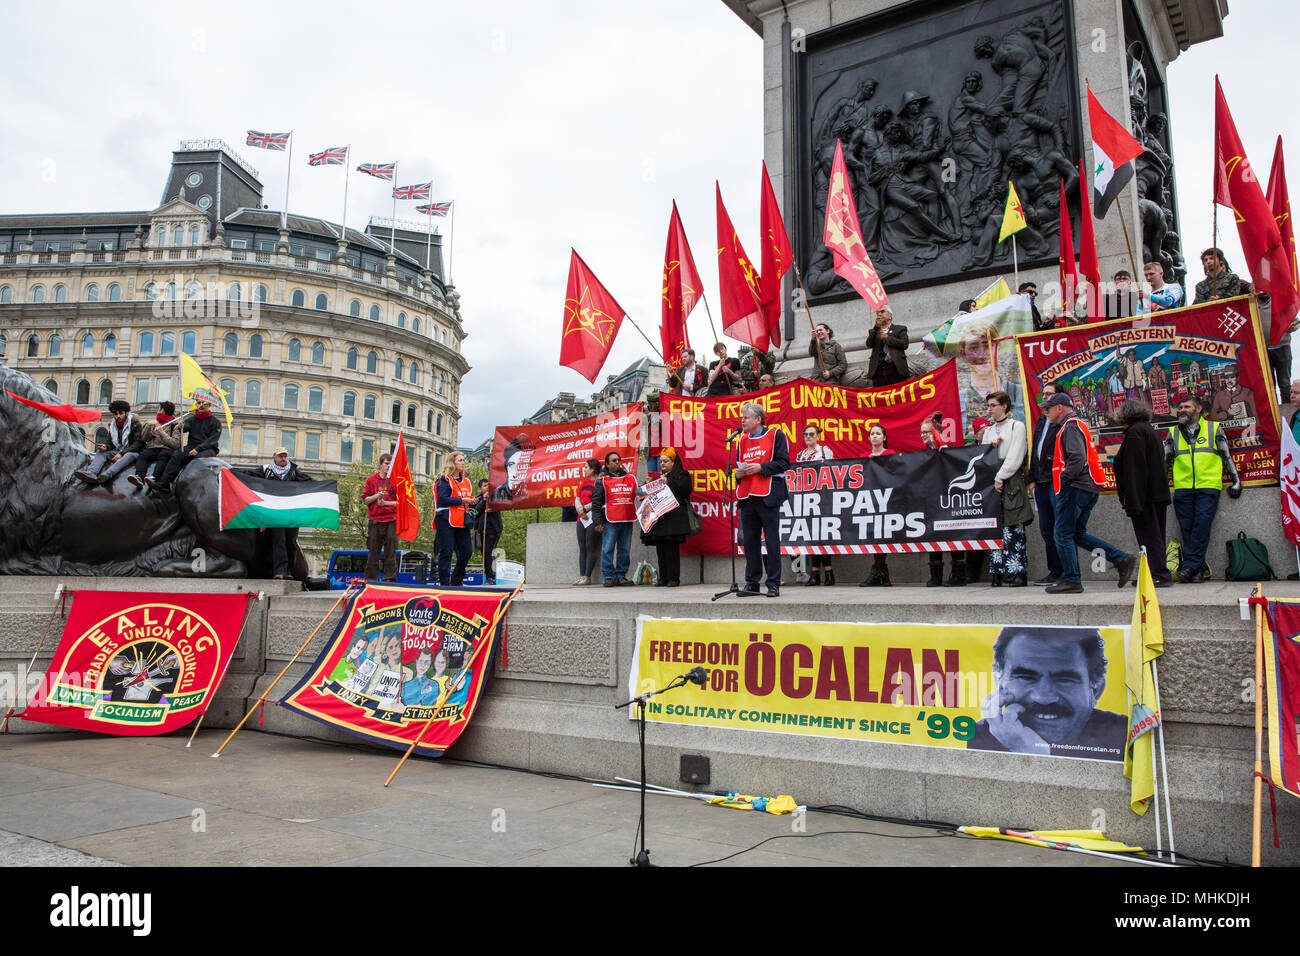 London, UK. 1st May, 2018. Tony Lennon of the London May Day Organising Committee addresses representatives of trade unions and socialist and communist parties from many different countries taking part in the annual May Day rally in Trafalgar Square to mark International Workers' Day. Credit: Mark Kerrison/Alamy Live News Stock Photo